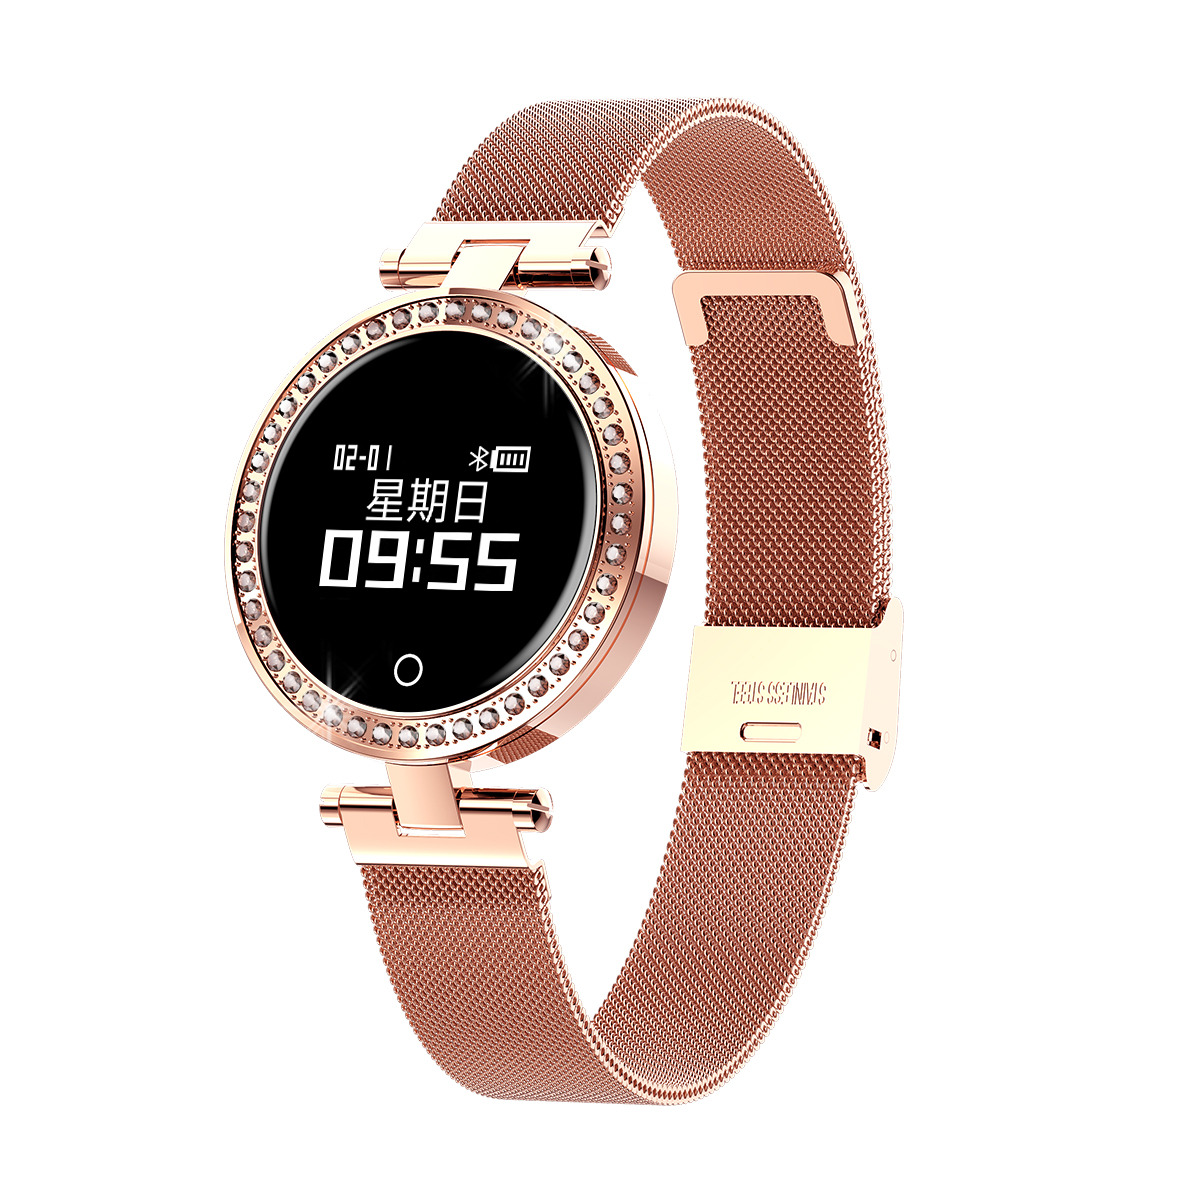 <strong>X10</strong> Ladies Smart Watch Round For Women IP68 Heart Rate Blood Pressure Monitor Message Call Reminder Pedometer Calorie Smartwatch